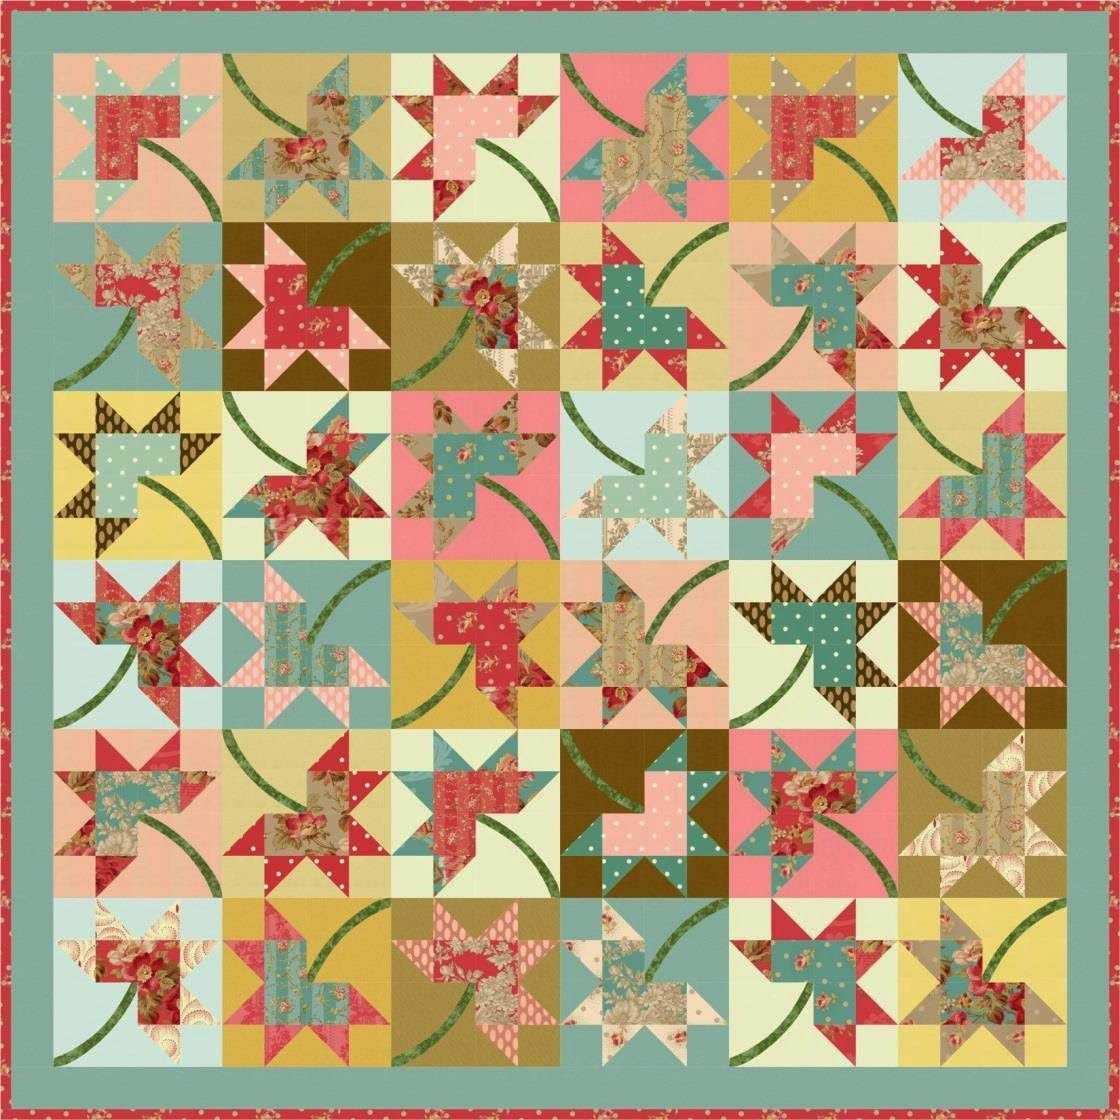 Quilt Inspiration: Free Pattern Day ! Autumn Leaves | I want to ... : free autumn quilt patterns - Adamdwight.com